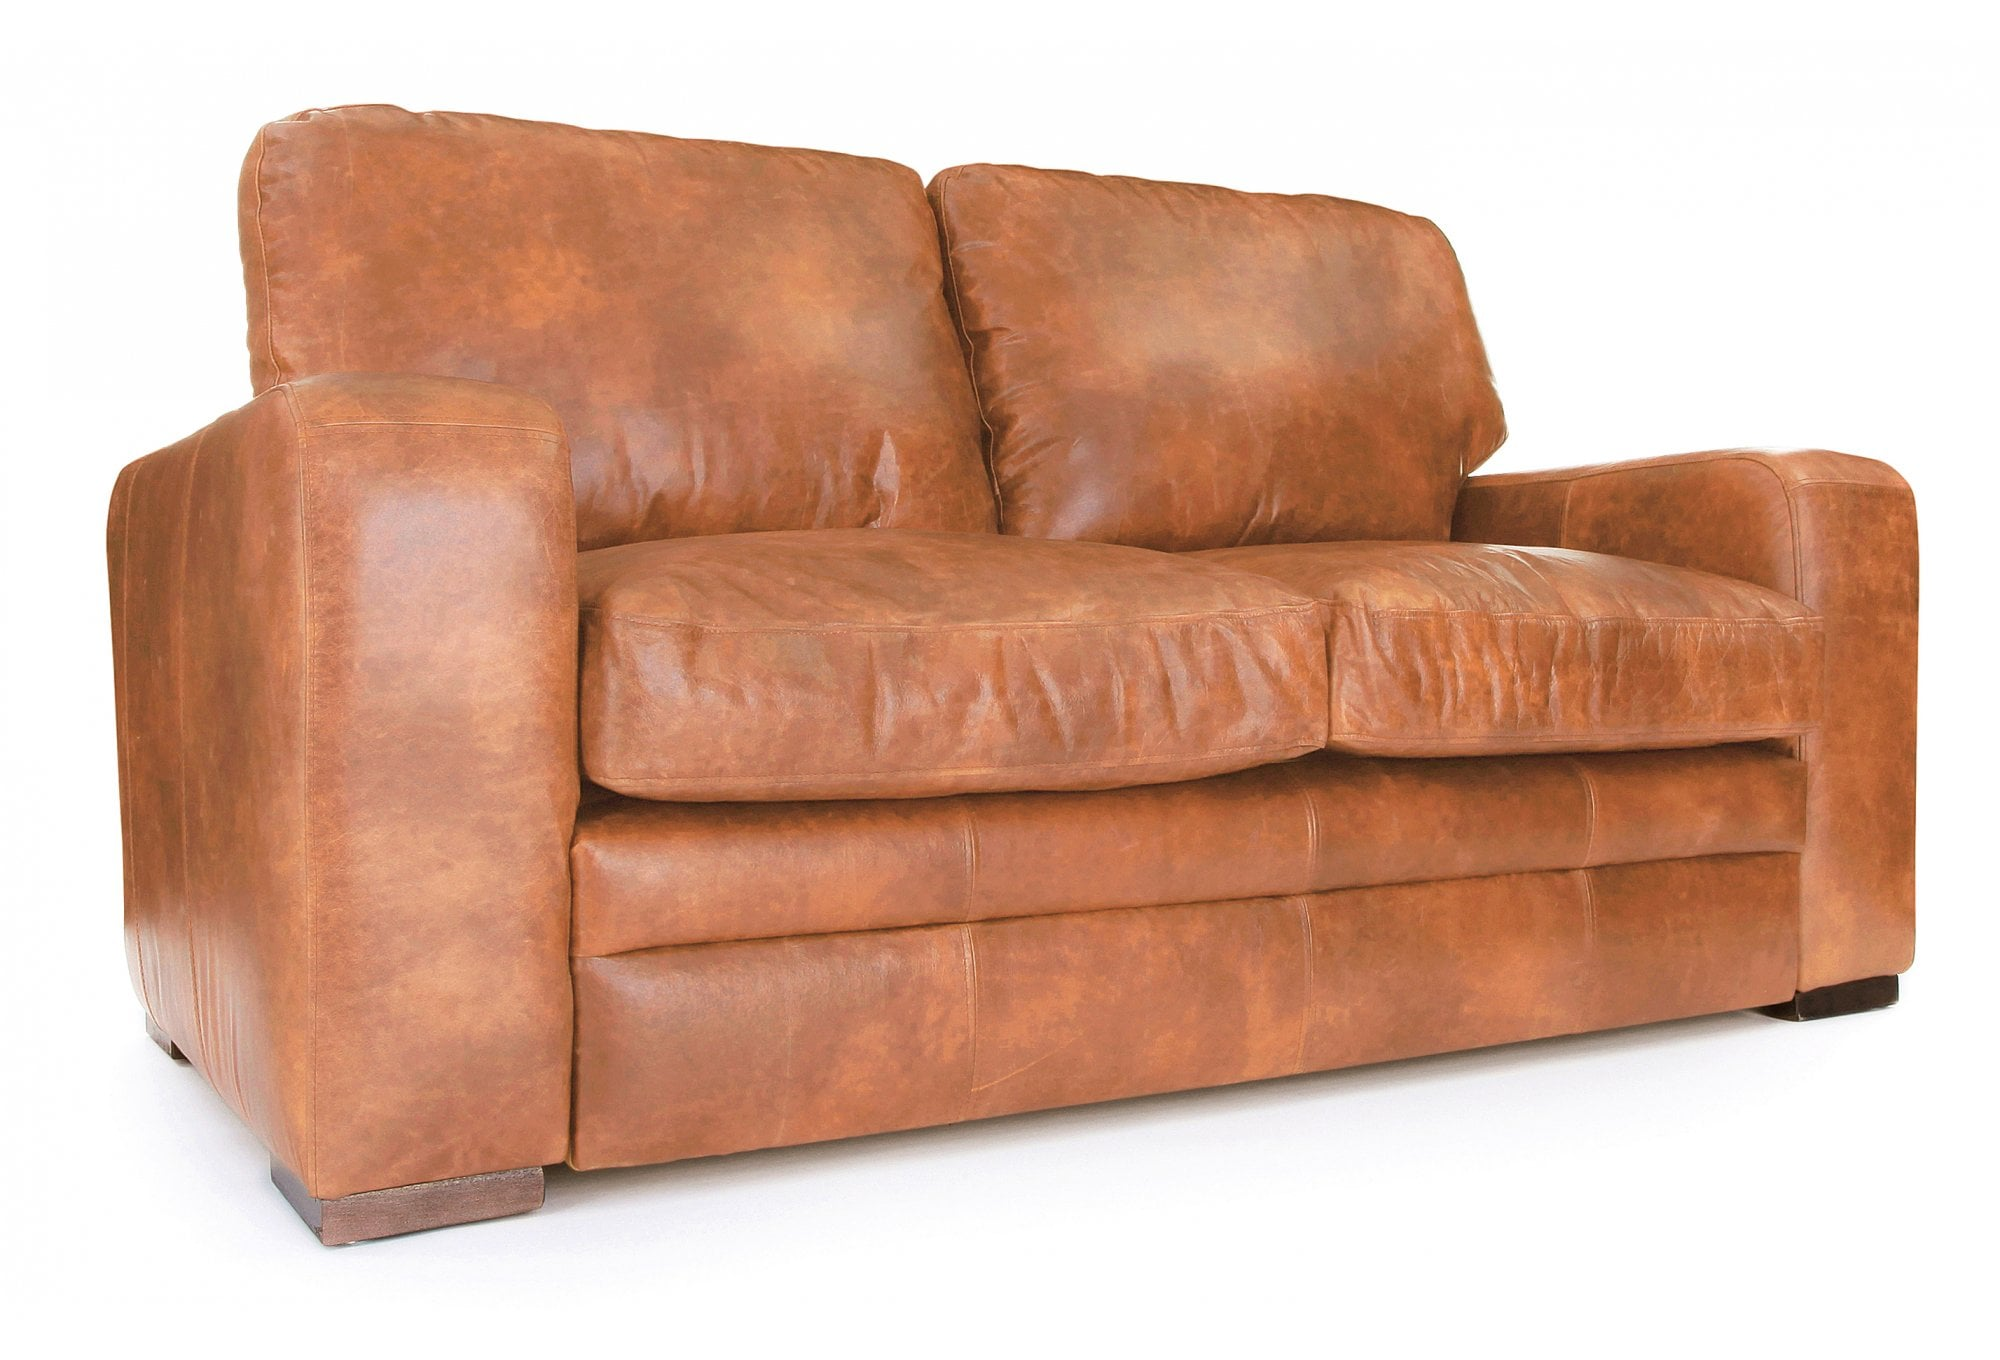 Urbanite Vintage Leather 2 Seater Sofa Bed From Old Boot